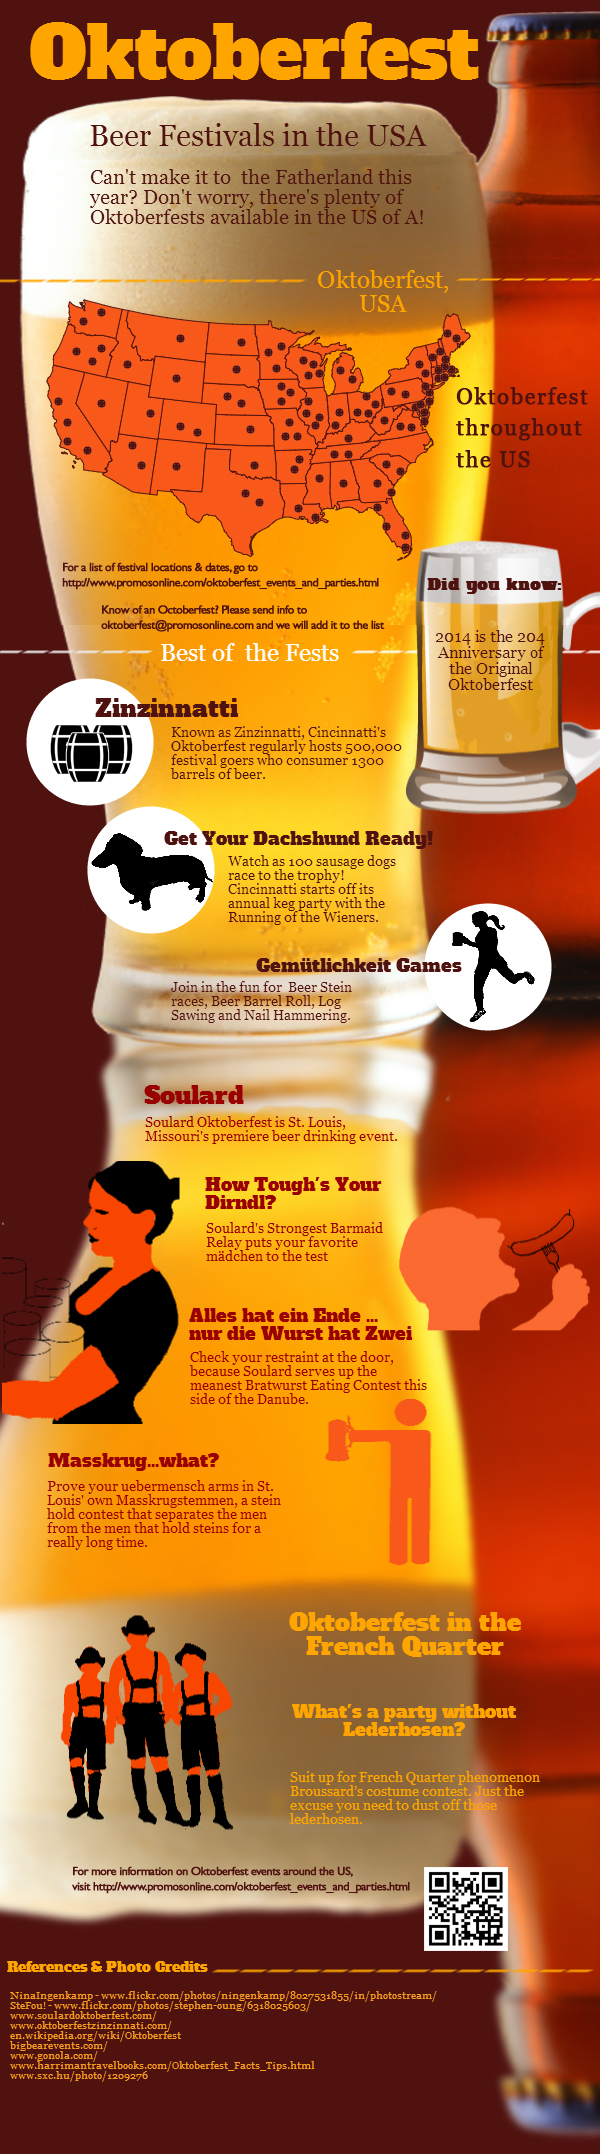 Oktoberfest Events in the USA